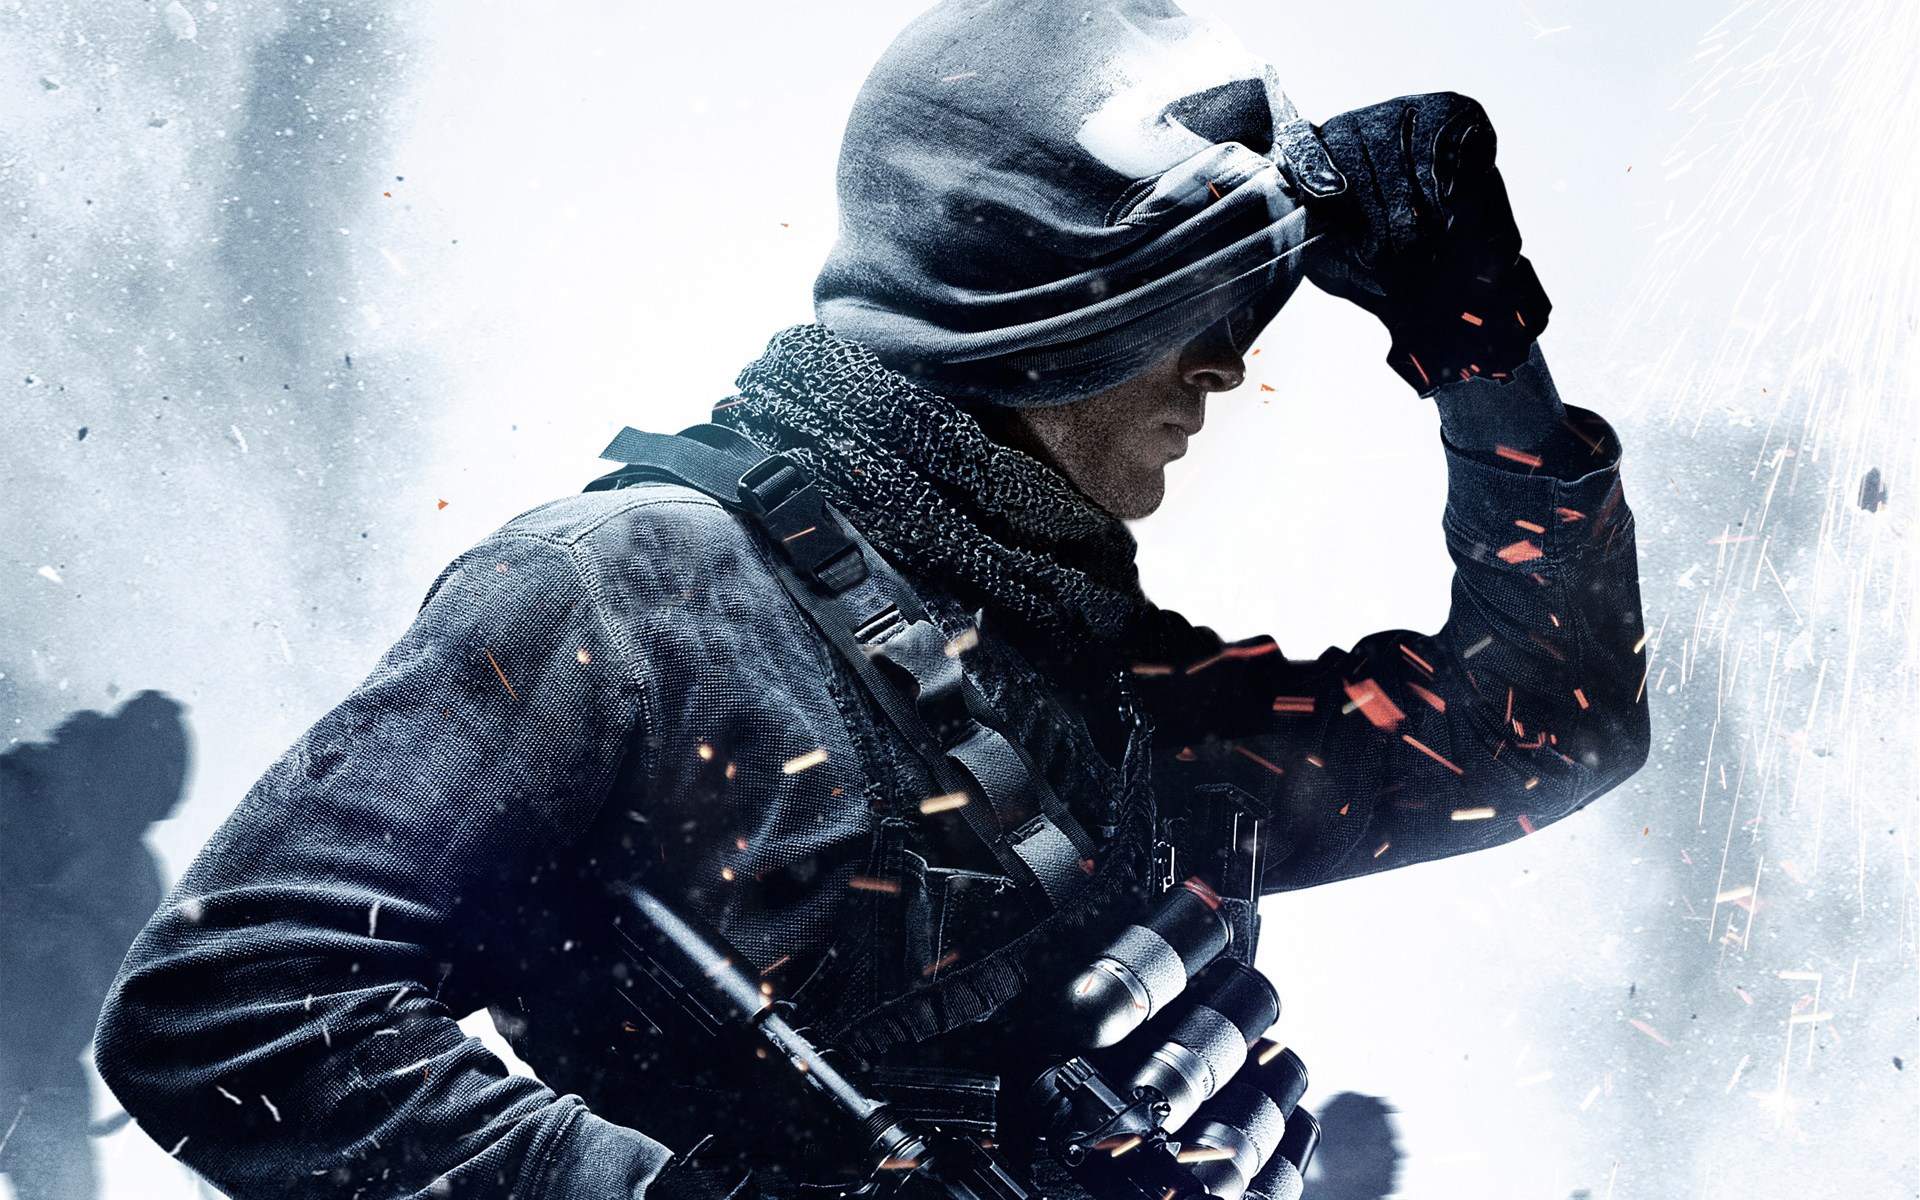 HD Wallpapers Call of Duty Ghosts Game